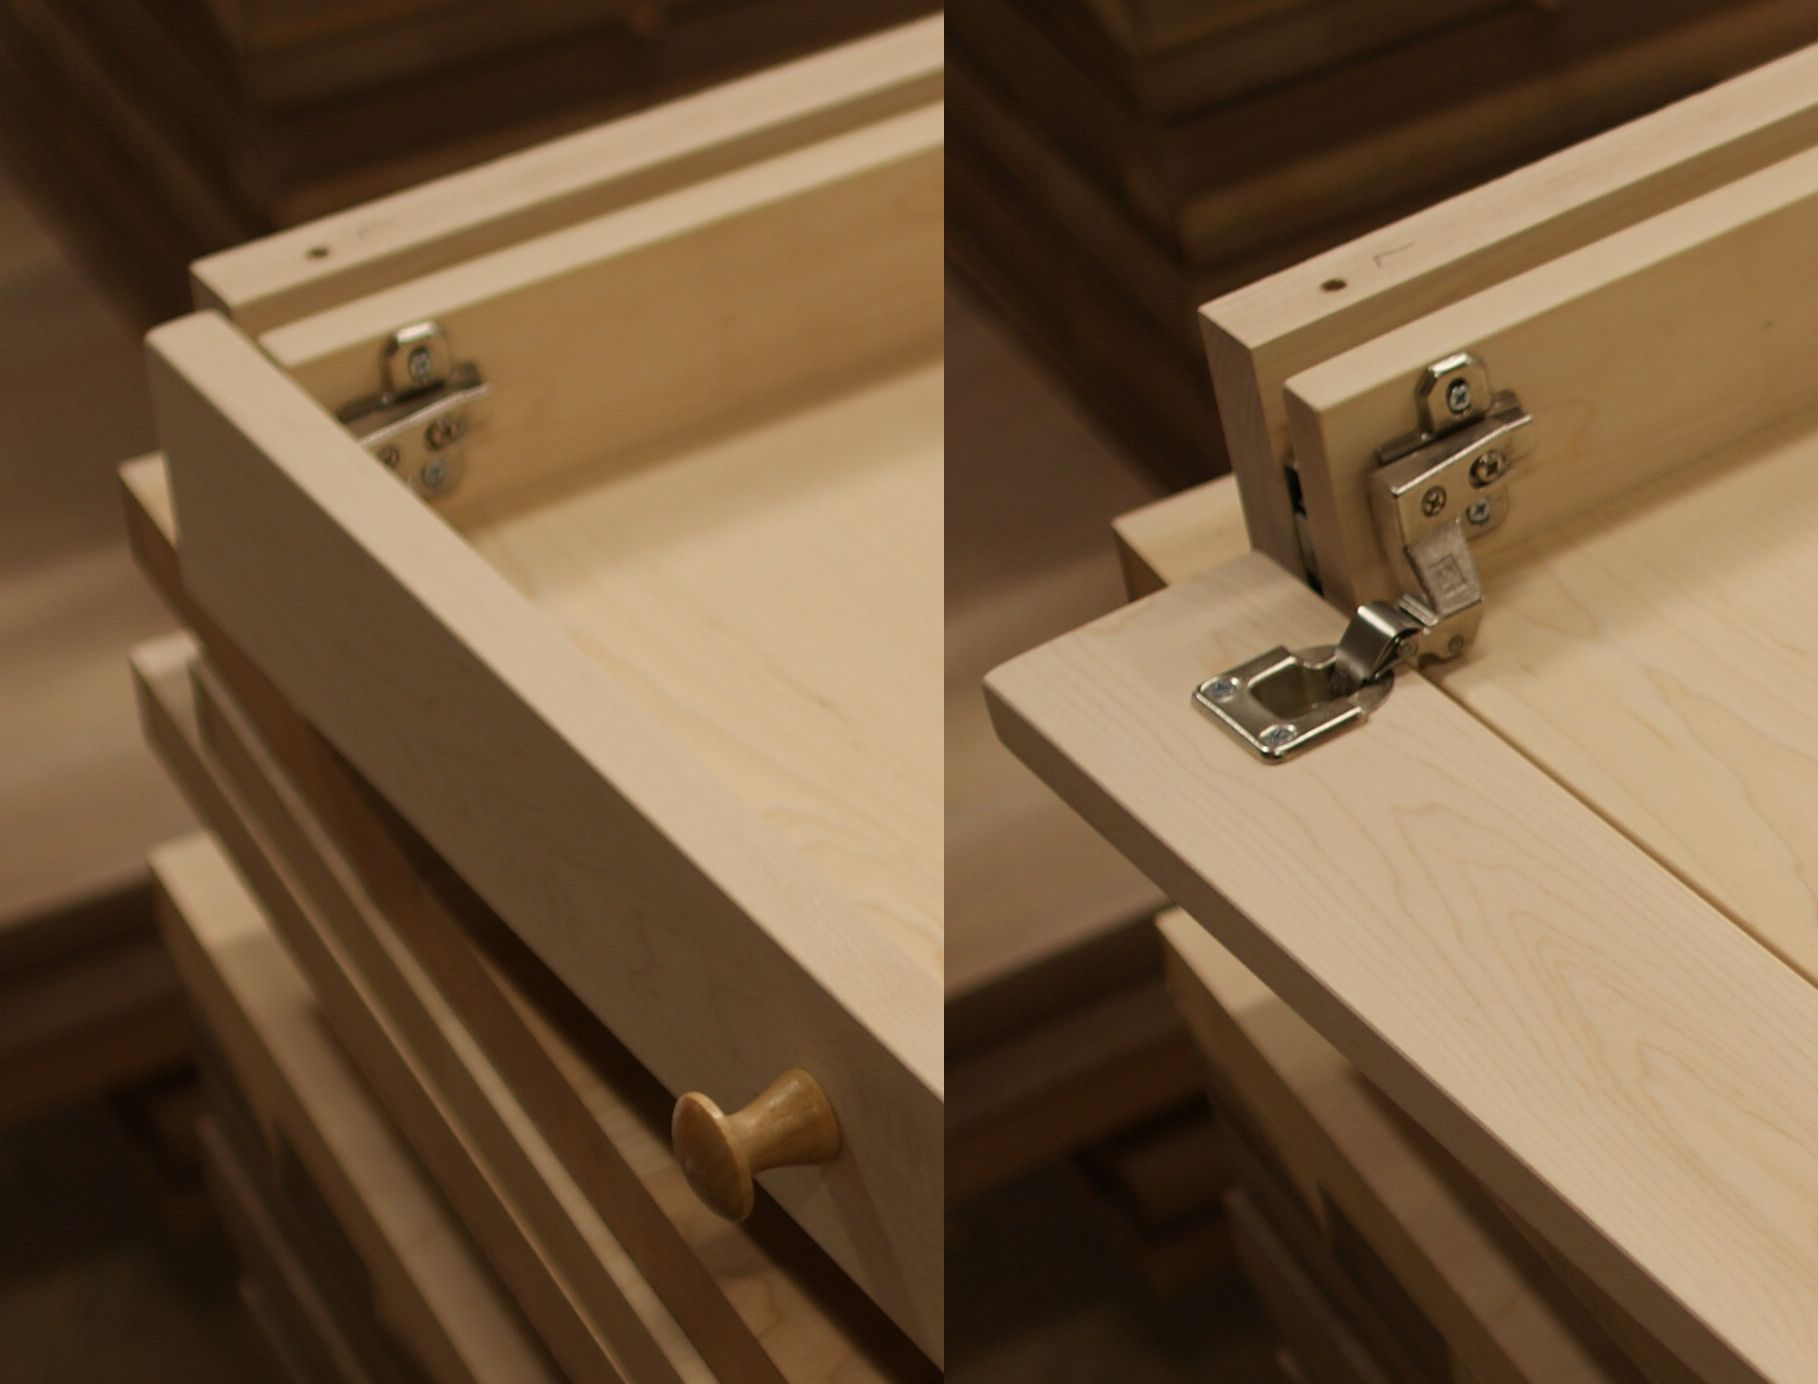 Hinged Drawer Slides : Test fitting a shiny new hinge for drawer front keyboard